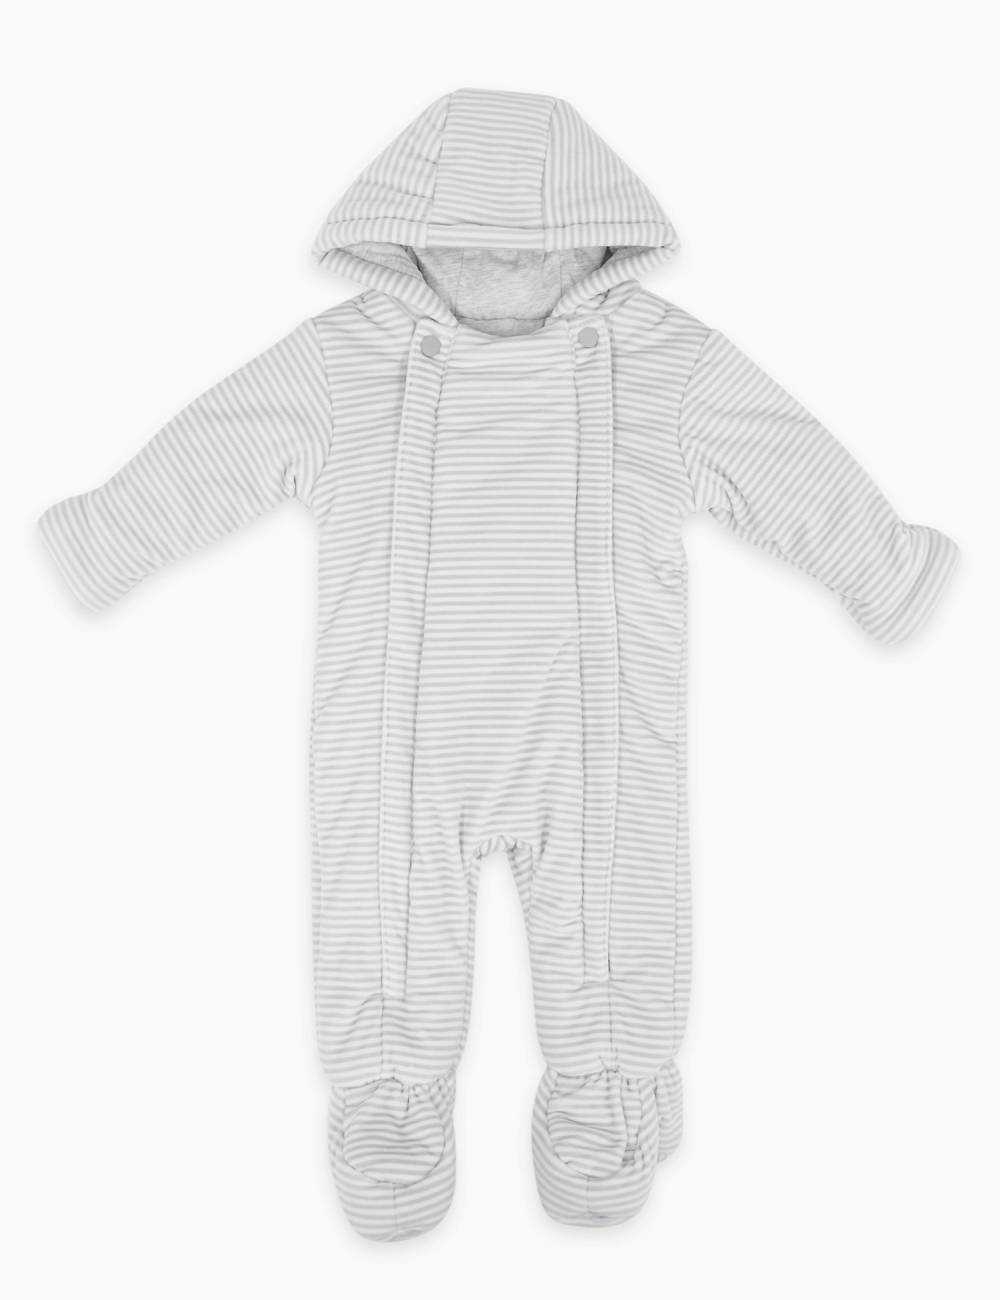 marks spencer recycled baby clothing